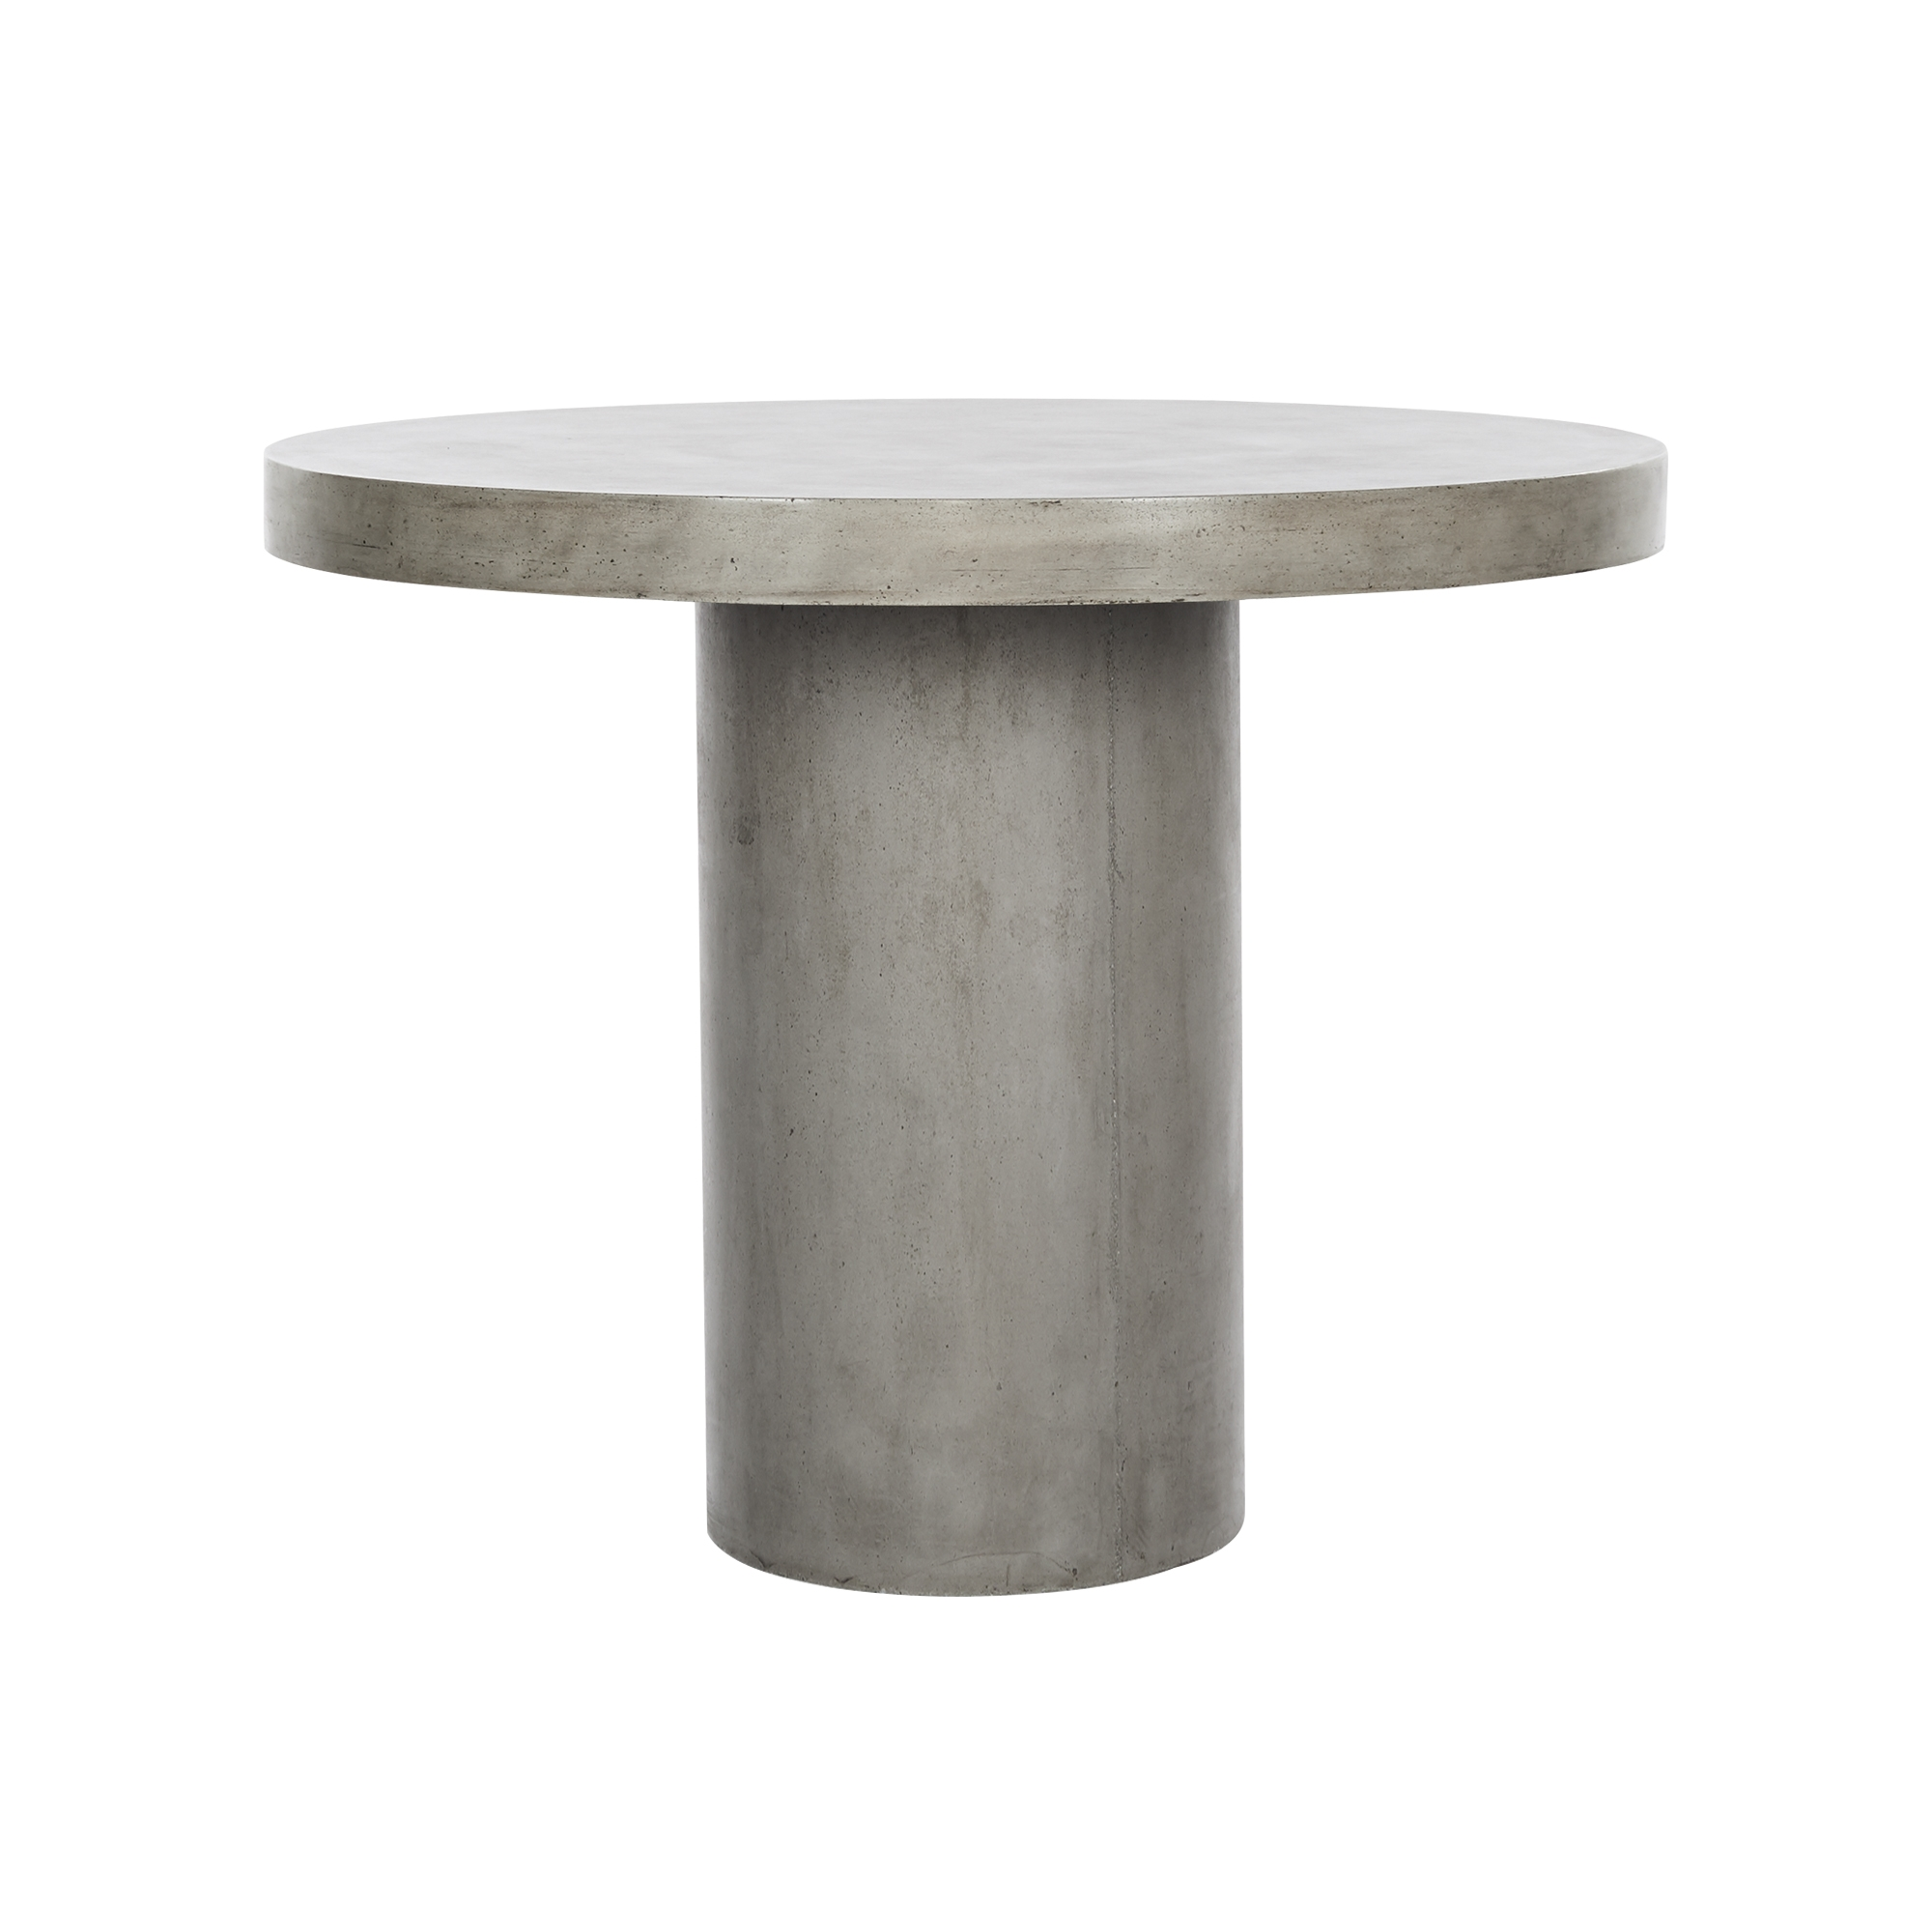 coco-republic-regent-outdoor-dining-table-grey-900mm-outdoor-furniture-dining-tables-001.jpg